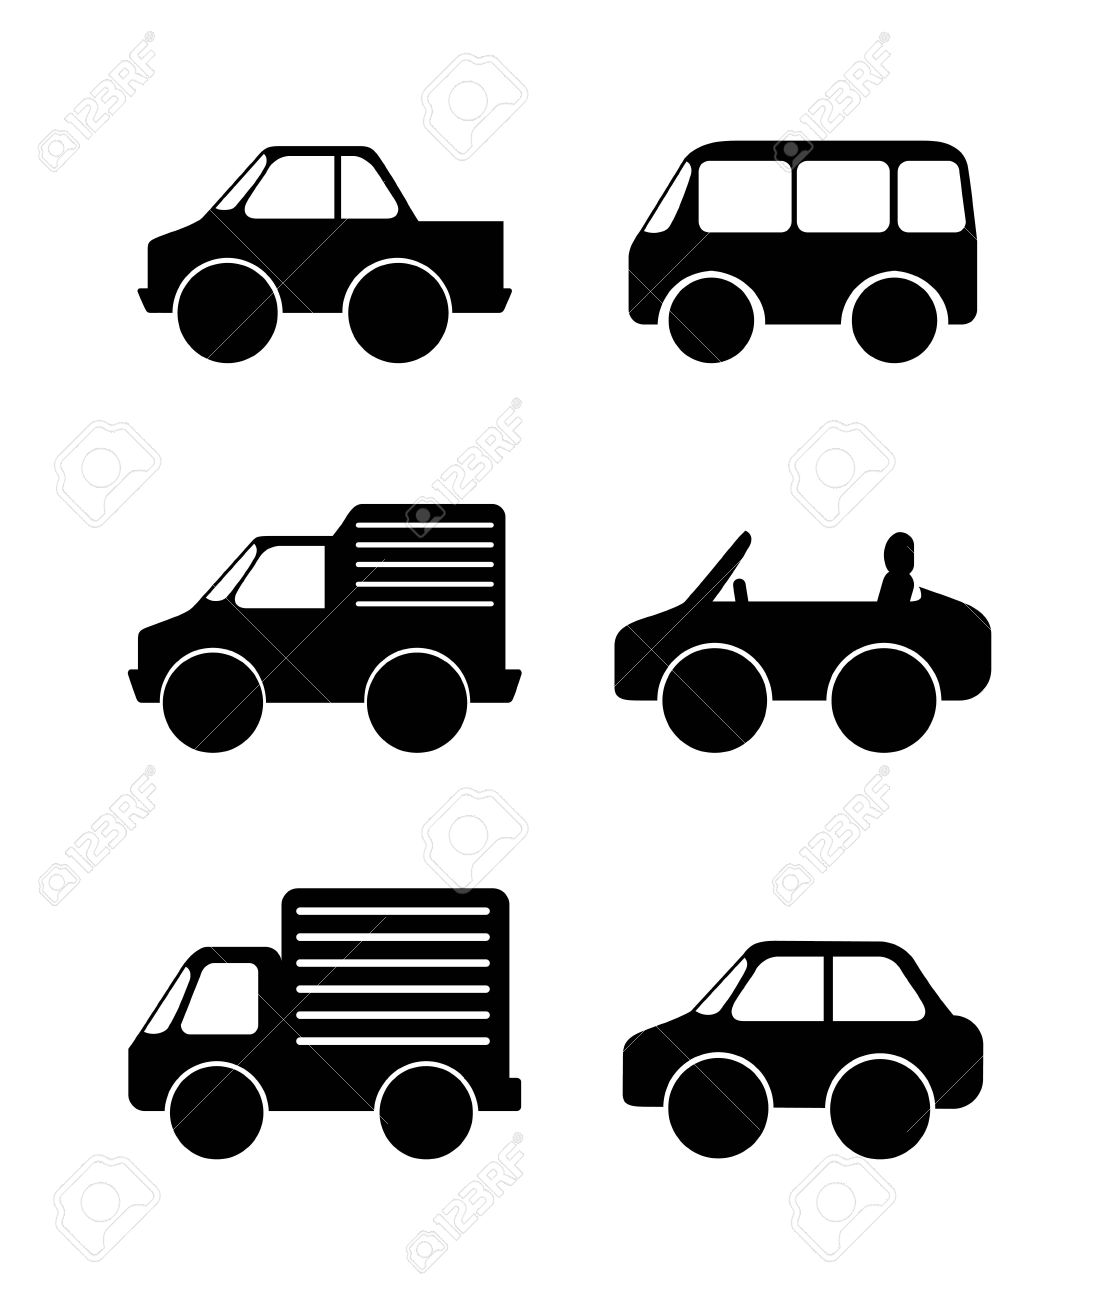 Car Graphic Design Vector Illustration Royalty Free Cliparts - Car graphics design